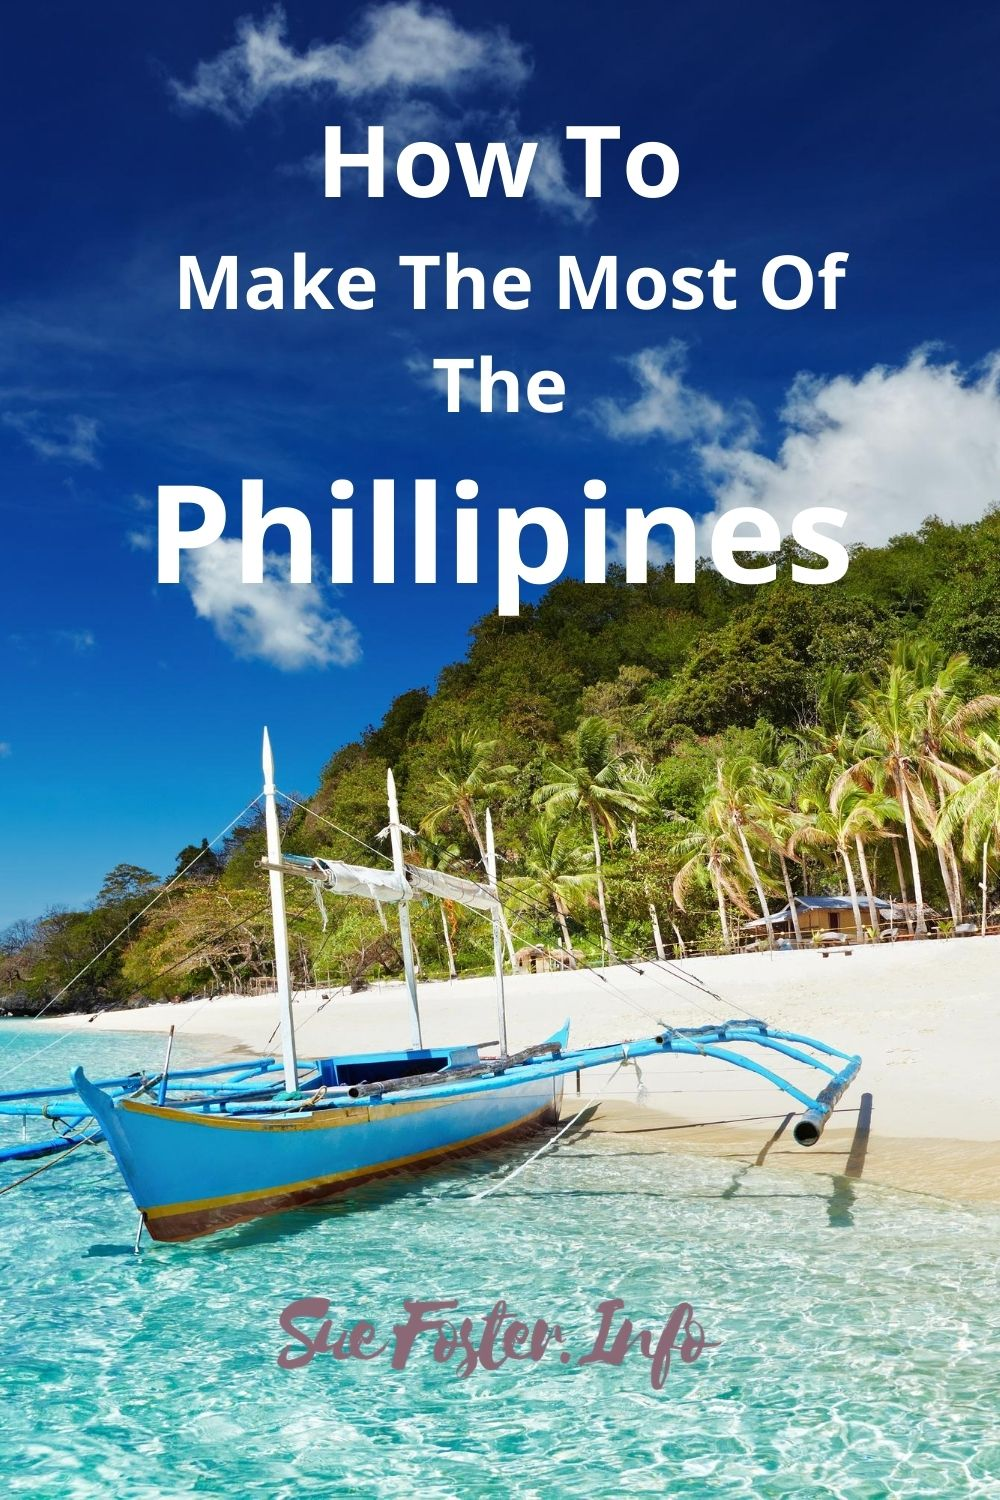 If you are planning to visit the Philippines to see its picture-perfect beaches and mountains, here are a few things that you should keep in mind in order to enjoy your stay in this tropical country.